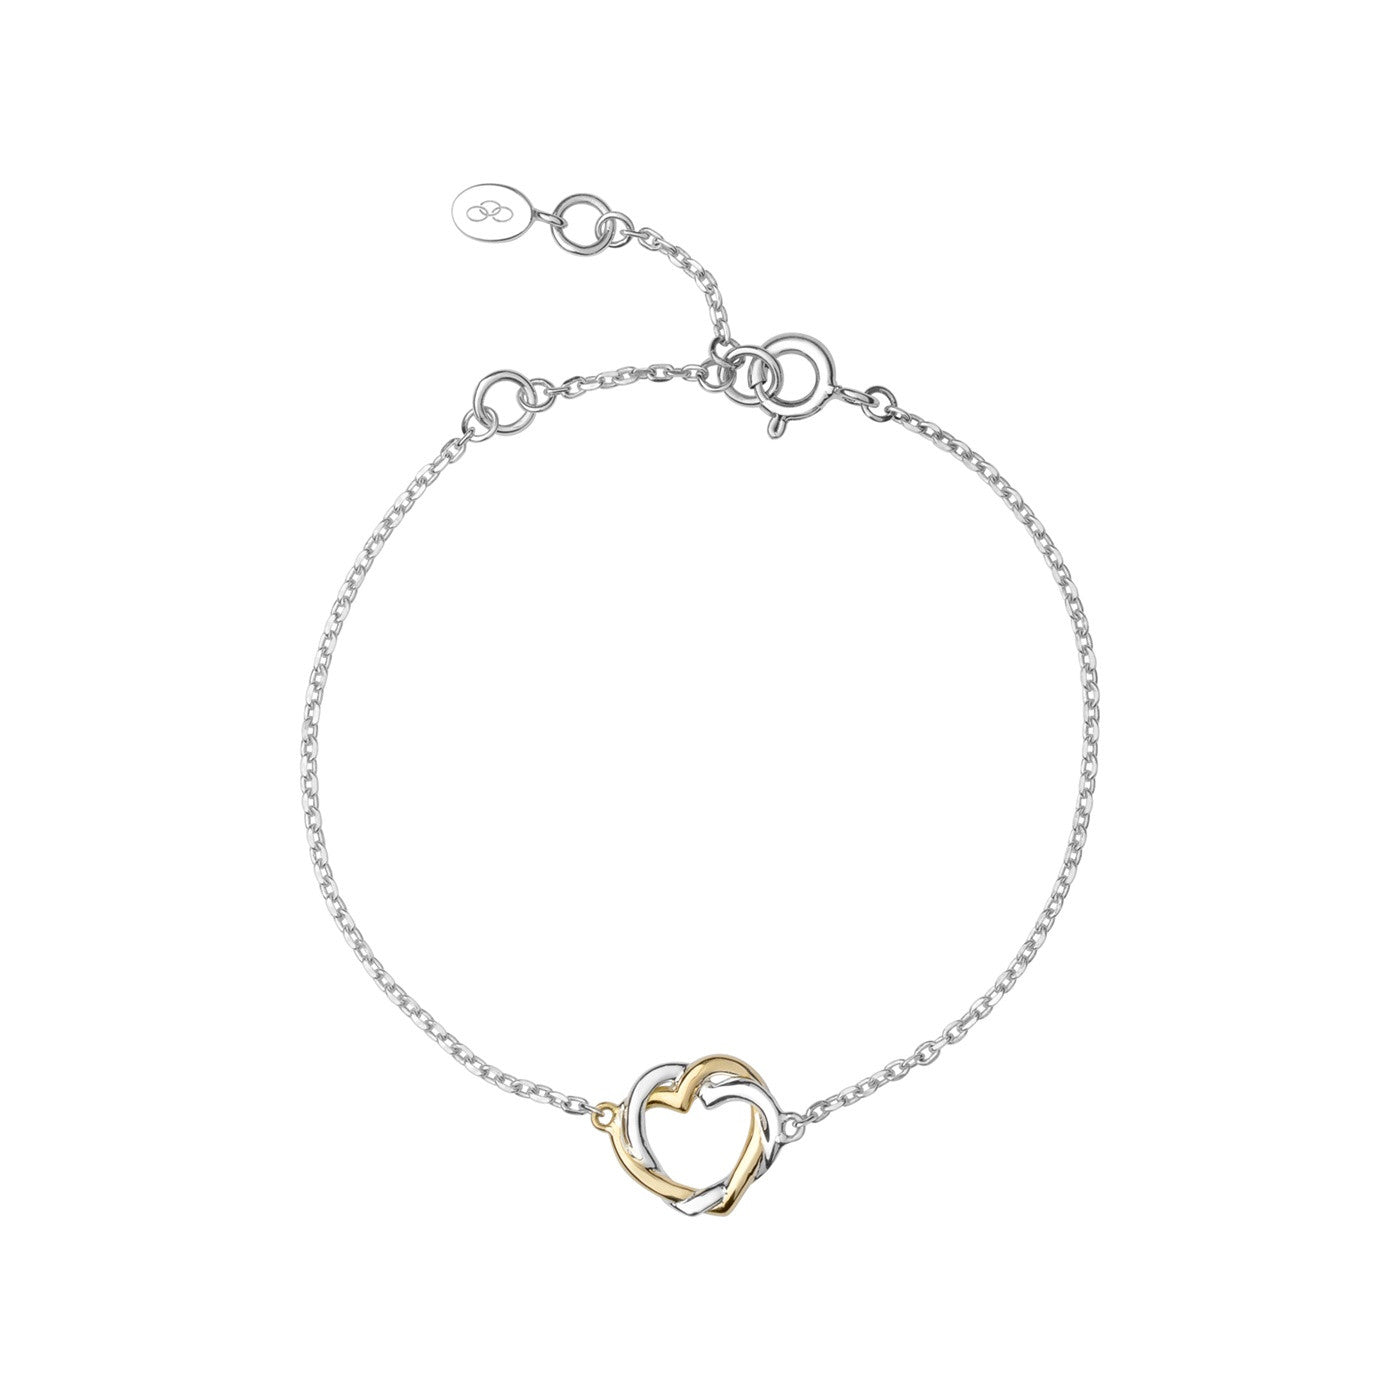 Links of London Kindred Soul Bracelet - 5010.2825